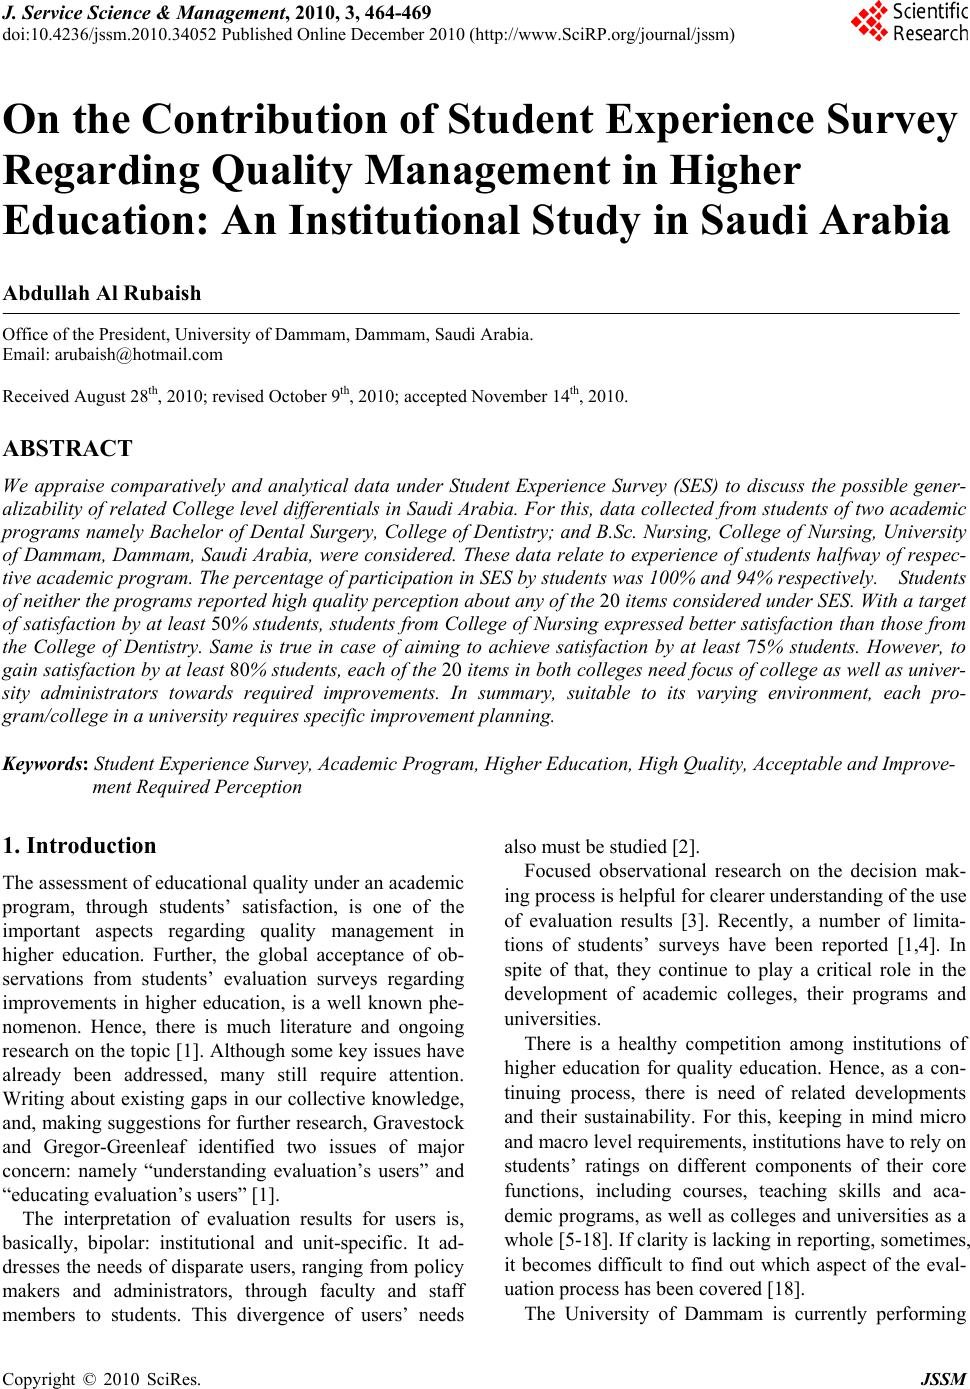 Compare And Contrast Essay Sample Paper On The Contribution Of Student Experience Survey Regarding Quality  Management In Higher Education An Institutional Study In Saudi Arabia How To Write A Business Essay also Business Essays Samples On The Contribution Of Student Experience Survey Regarding Quality  After High School Essay